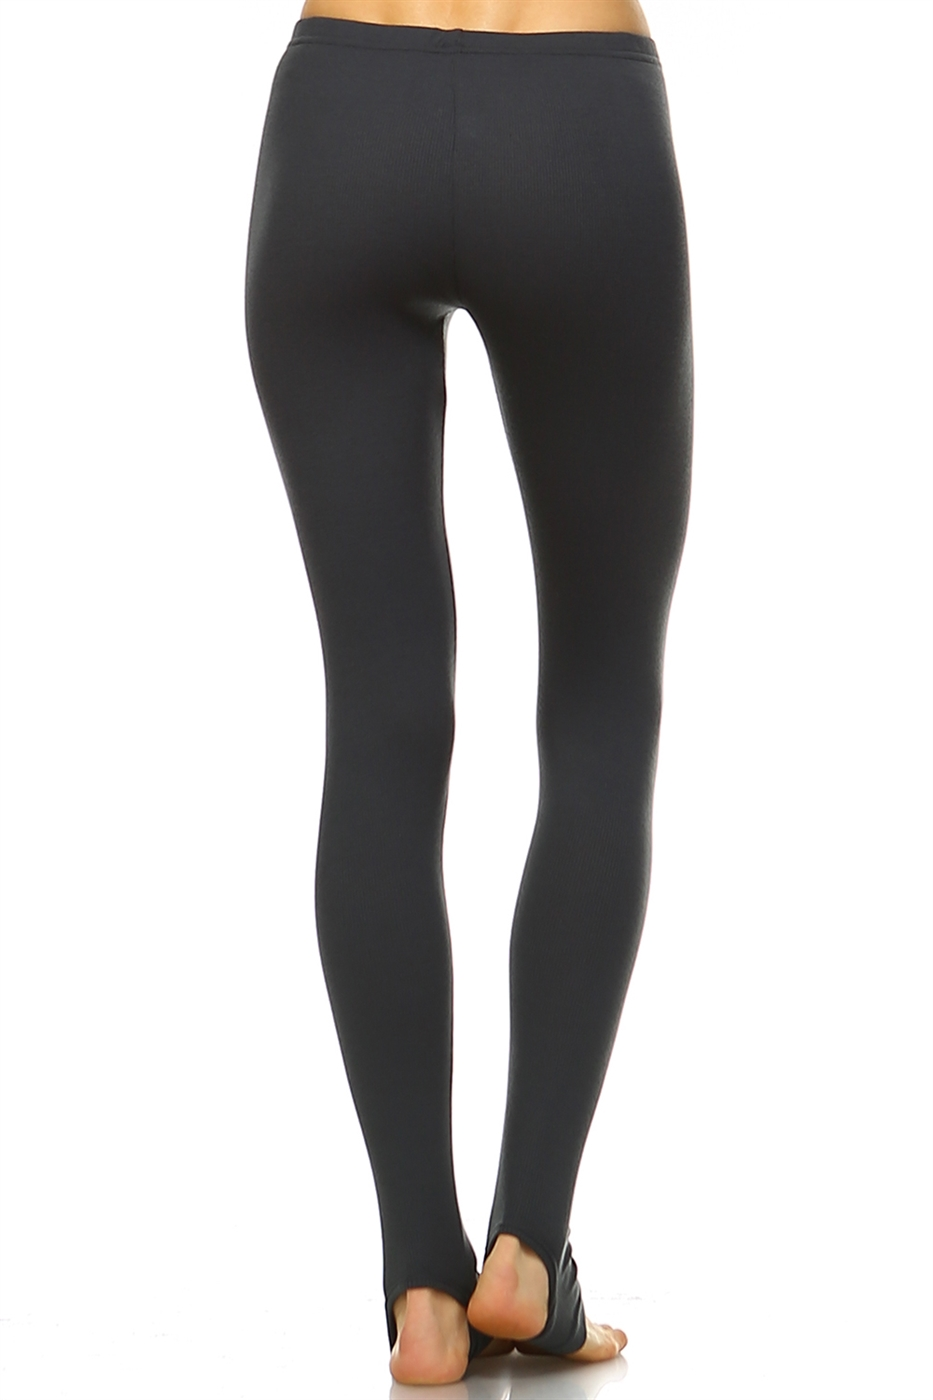 LOUNGE LEGGINGS  - orangeshine.com